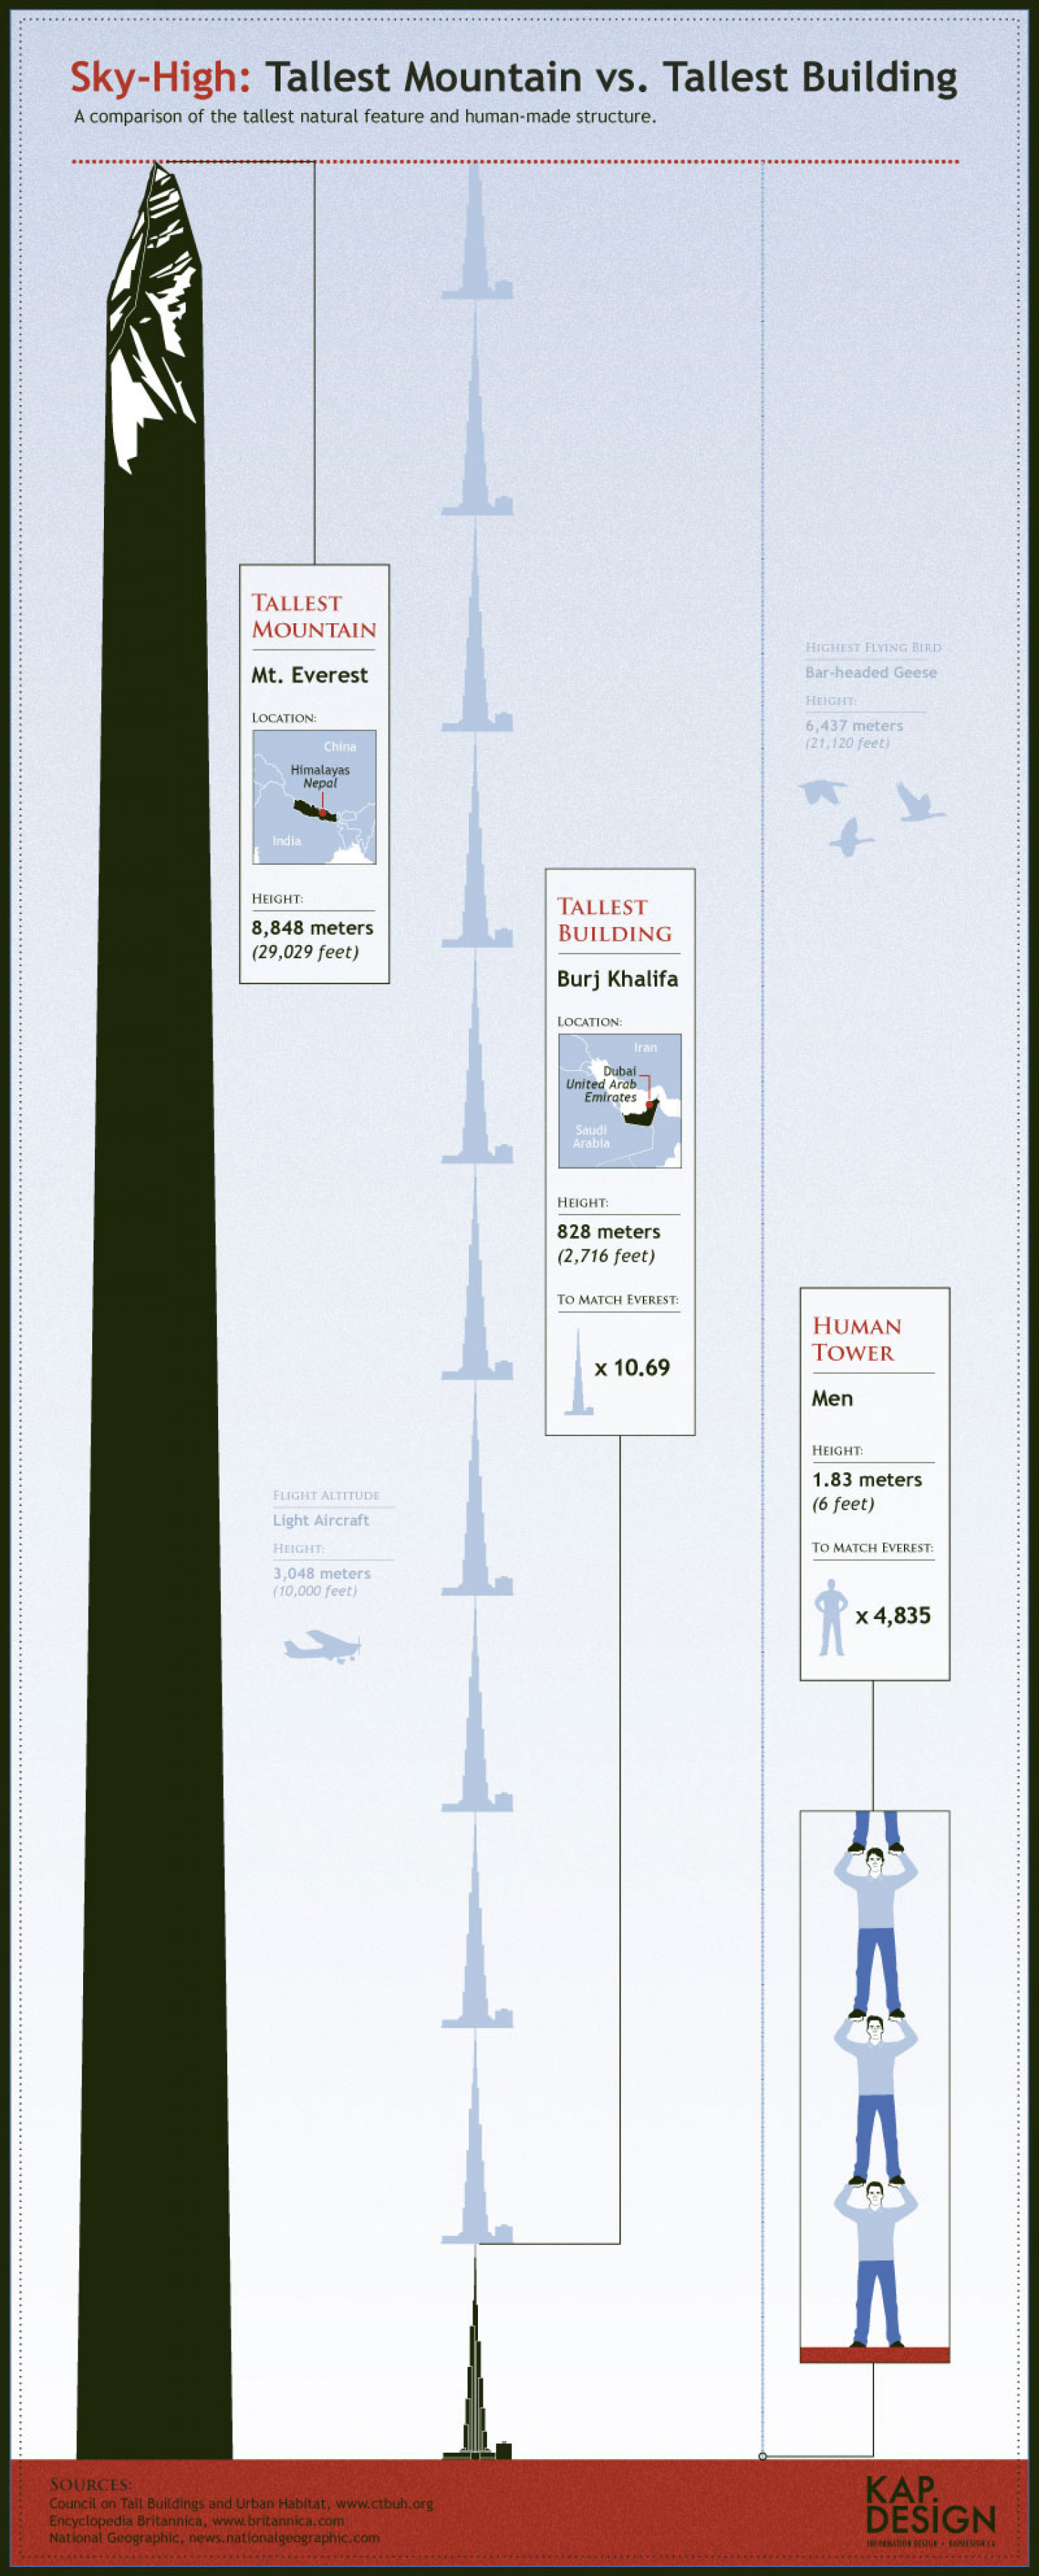 Feet In Meter Sky High Tallest Mountain Vs Tallest Building Visual Ly